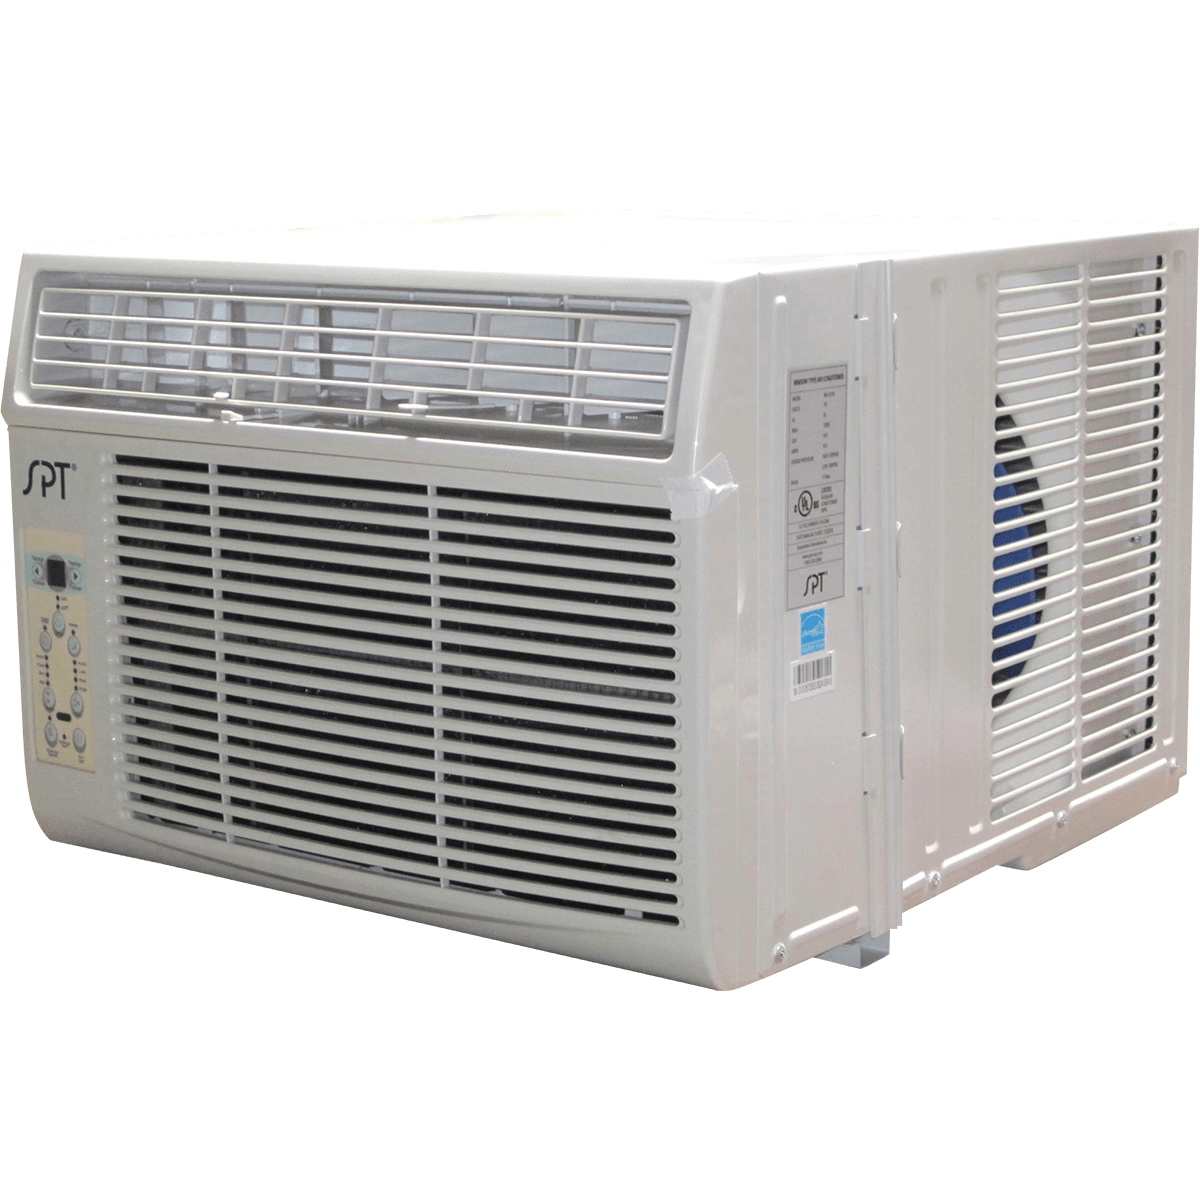 Sunpentown Wa 12fms1 Window Ac Sylvane